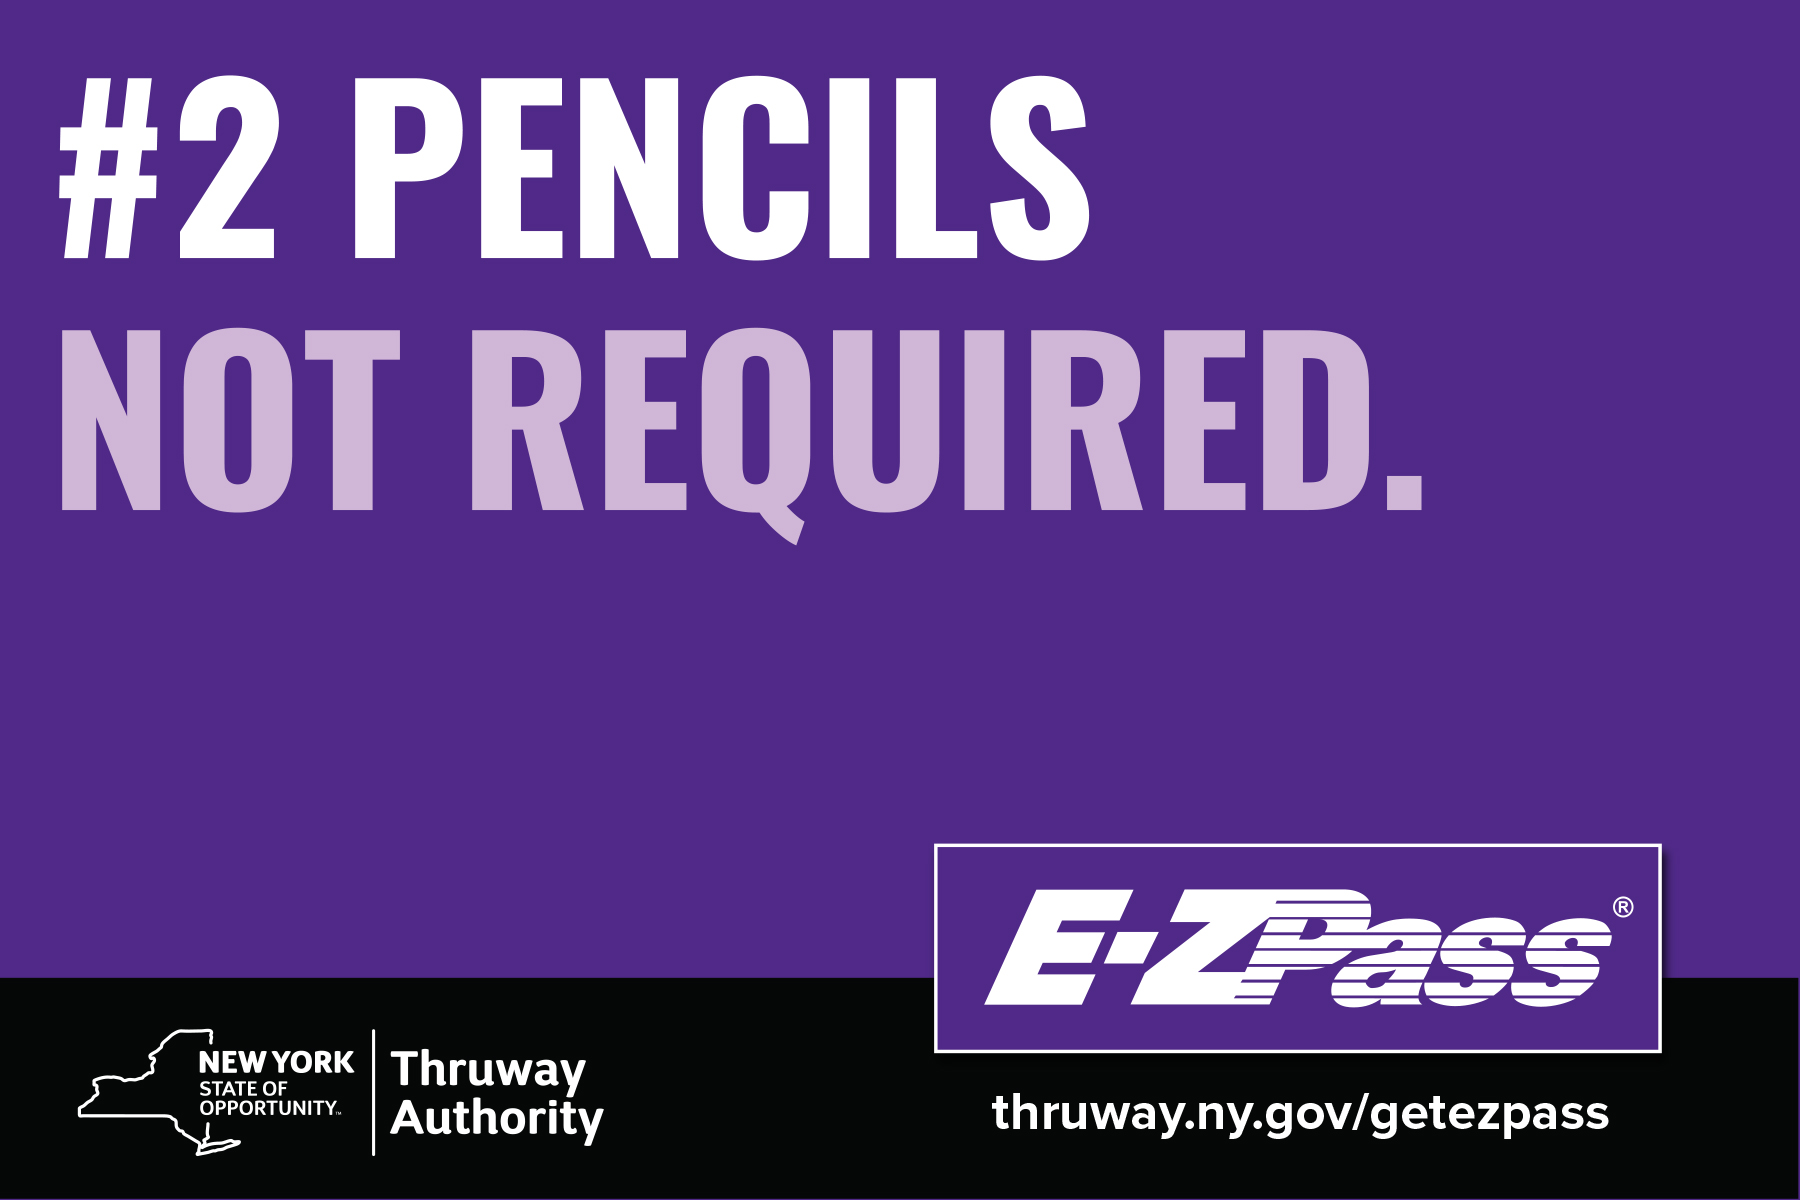 ezpass postcard ad your summer roadtrip called